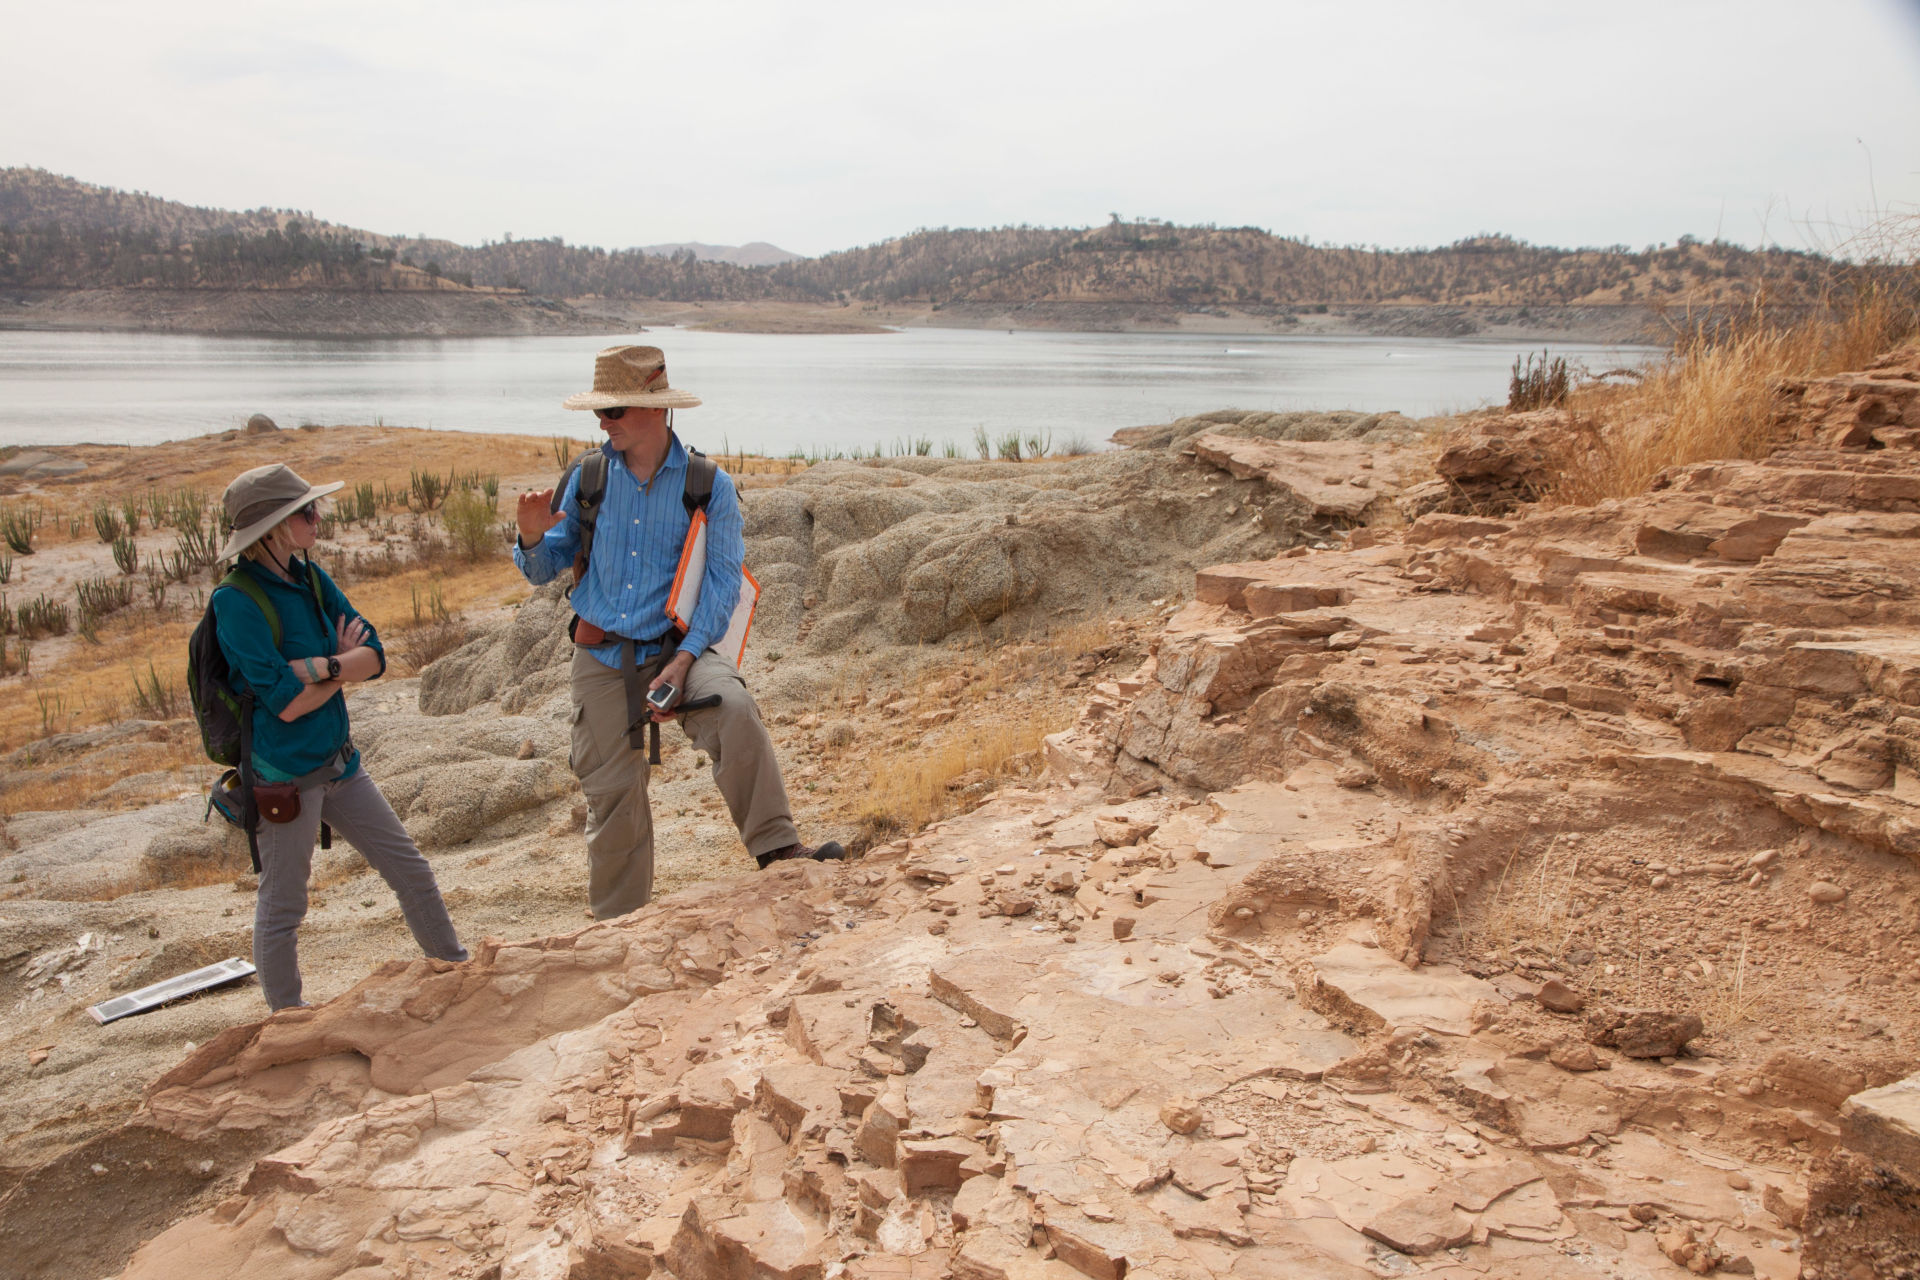 Freso State geologist Chris Pluhar and his student Wynter Erickson hope these rocks, normally underwater in Millerton Lake, will reveal clues about the geological history of the Sierra Nevada.